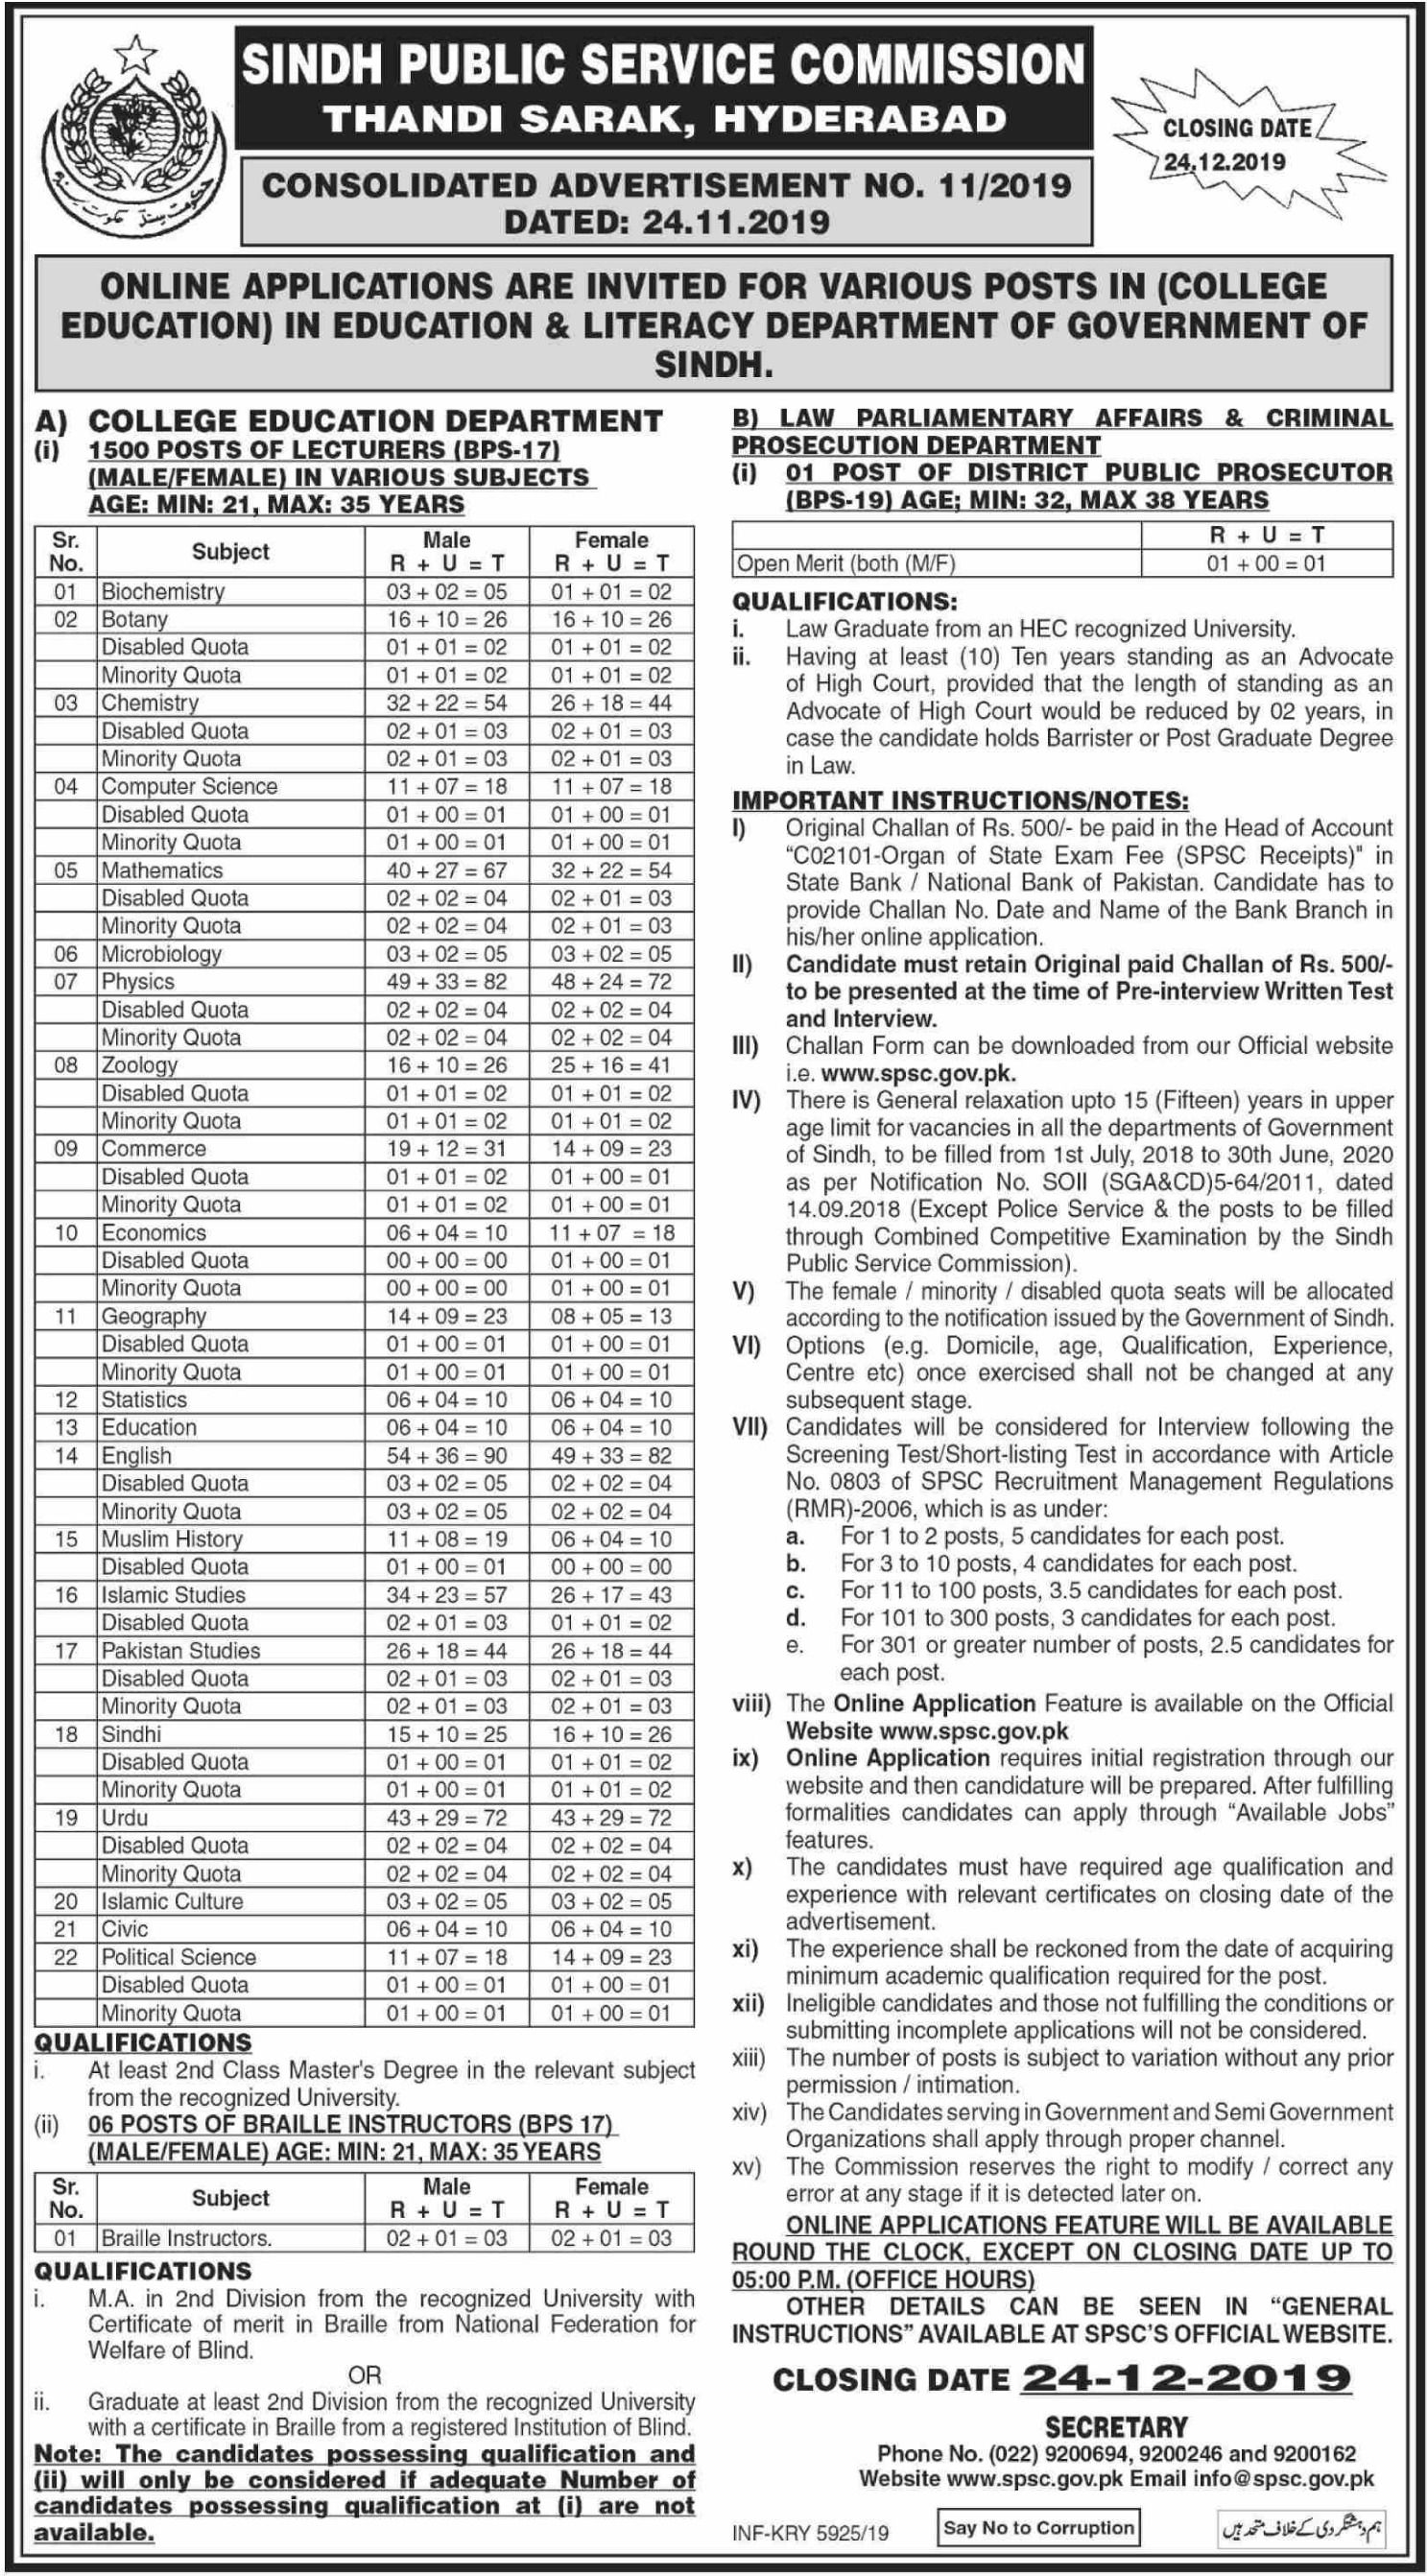 SPSC College Lecturer Jobs 1500 Posts (BPS17) Apply